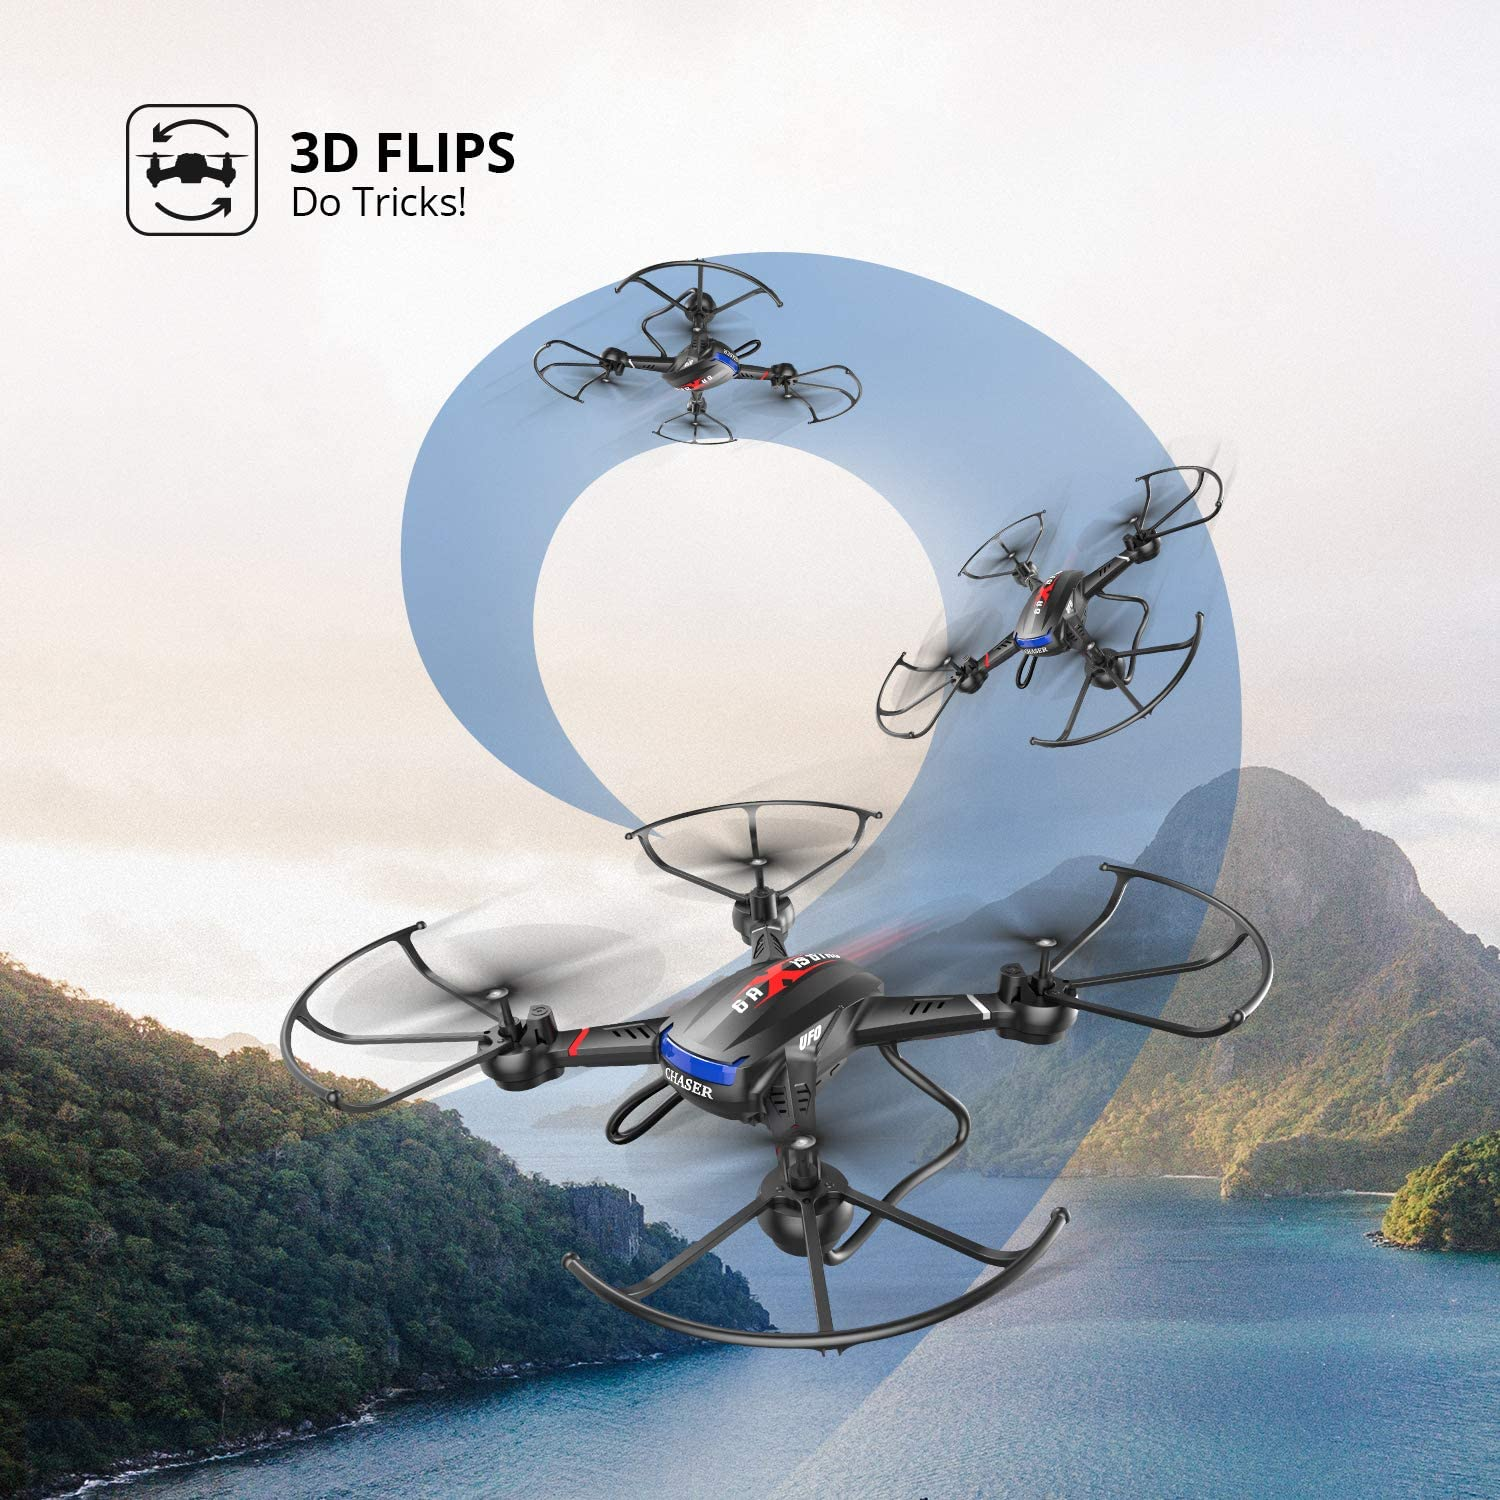 Holy Stone F181W WIfi Fpv Drone review about 3d flips and stunts